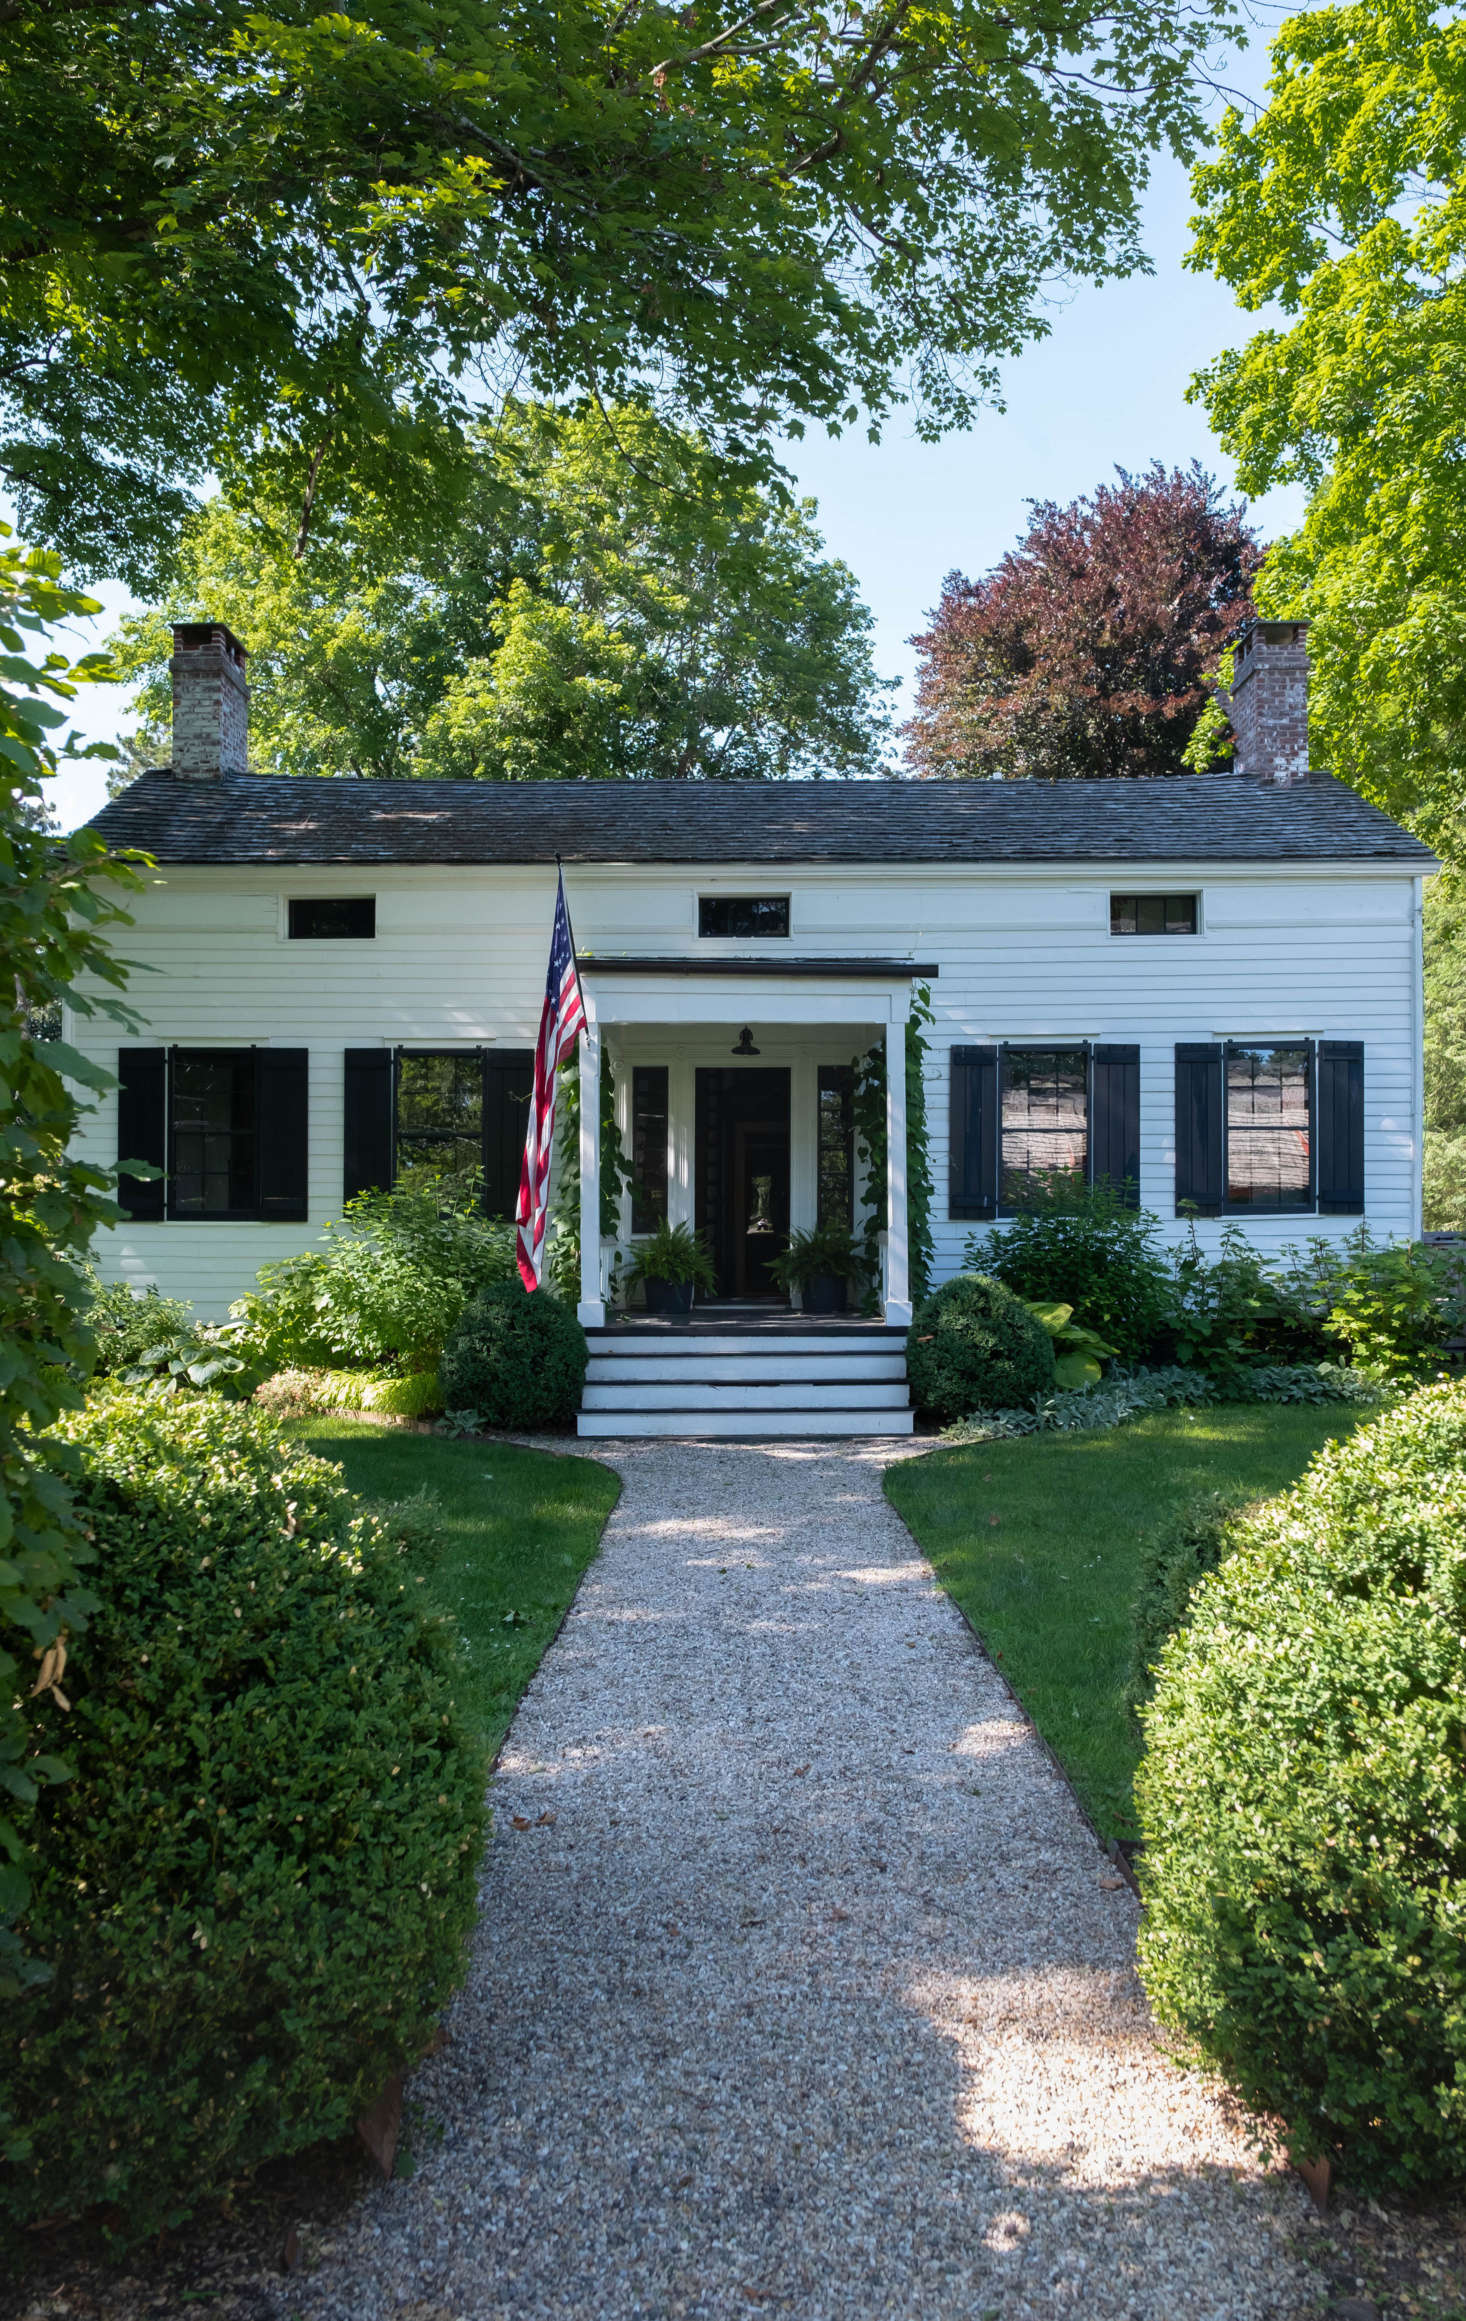 Hudson Eclectic: An Artist's Circa-1830 Home in Claverack, New York